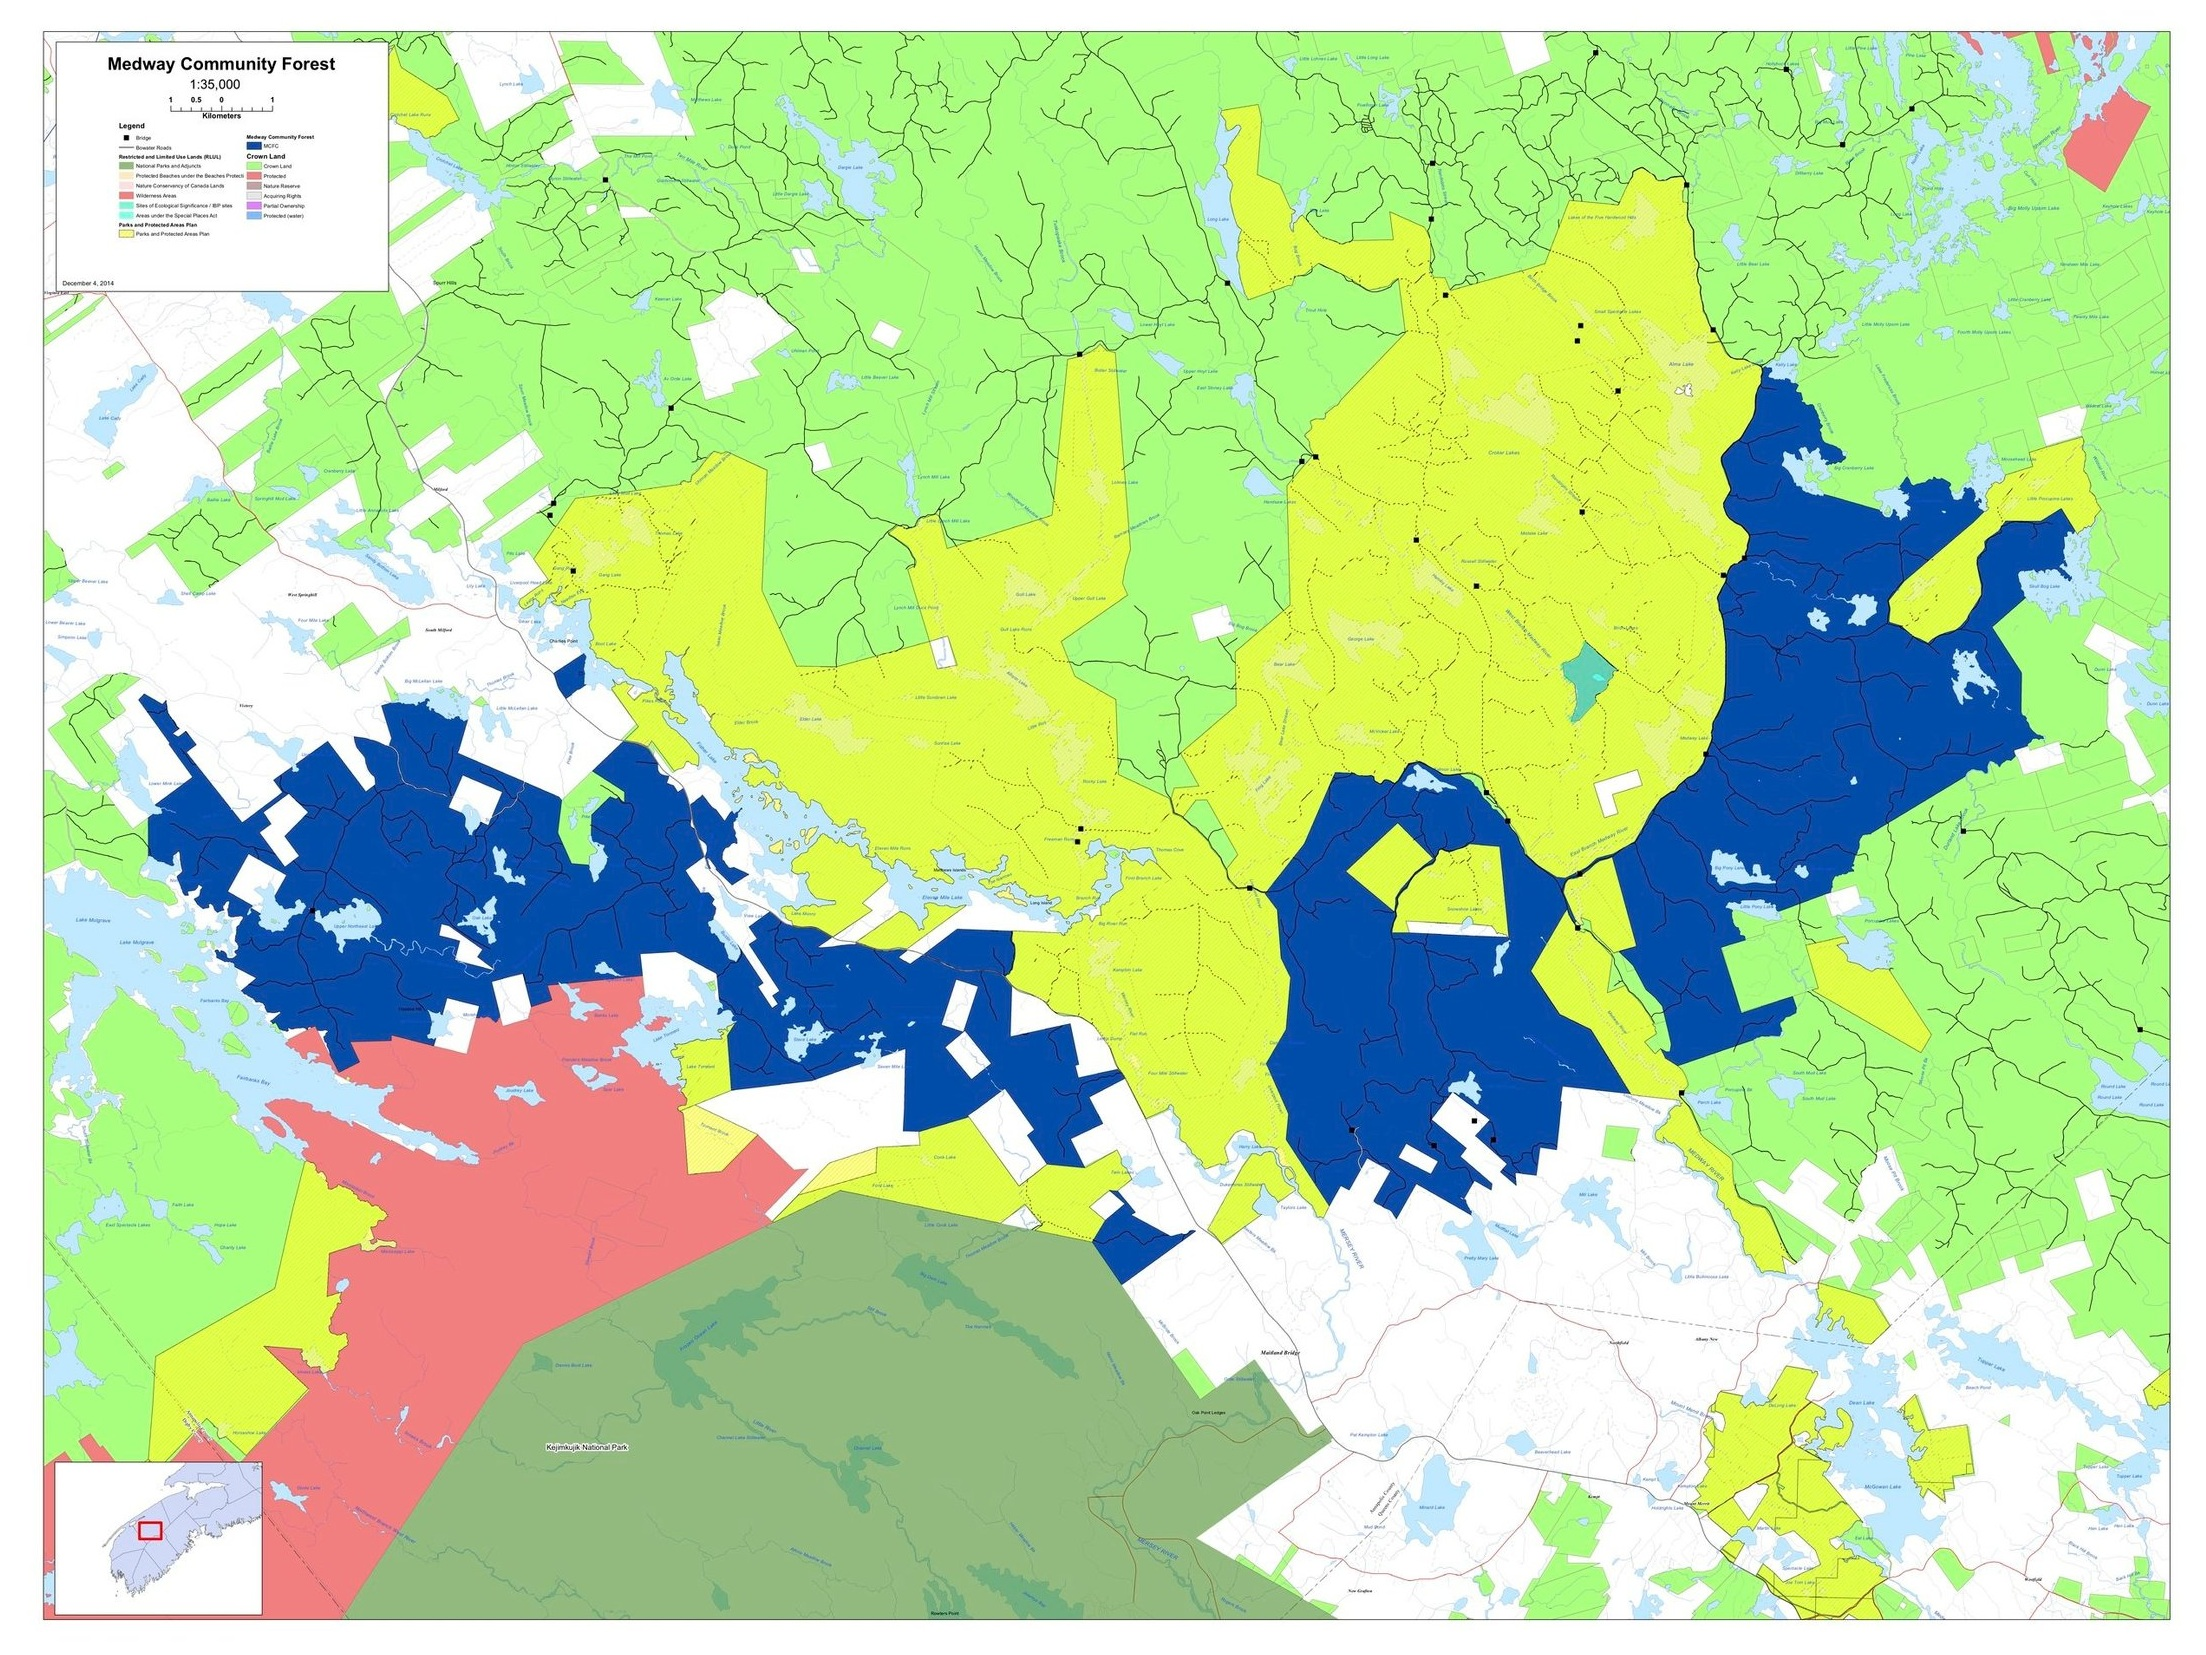 The MCFC license area (blue) is surrounded by a vast network of parks (Kejimkujik in green) and protected areas (Medway Lakes Wilderness Area in yellow and the Tobeatic Wilderness Area in pink).